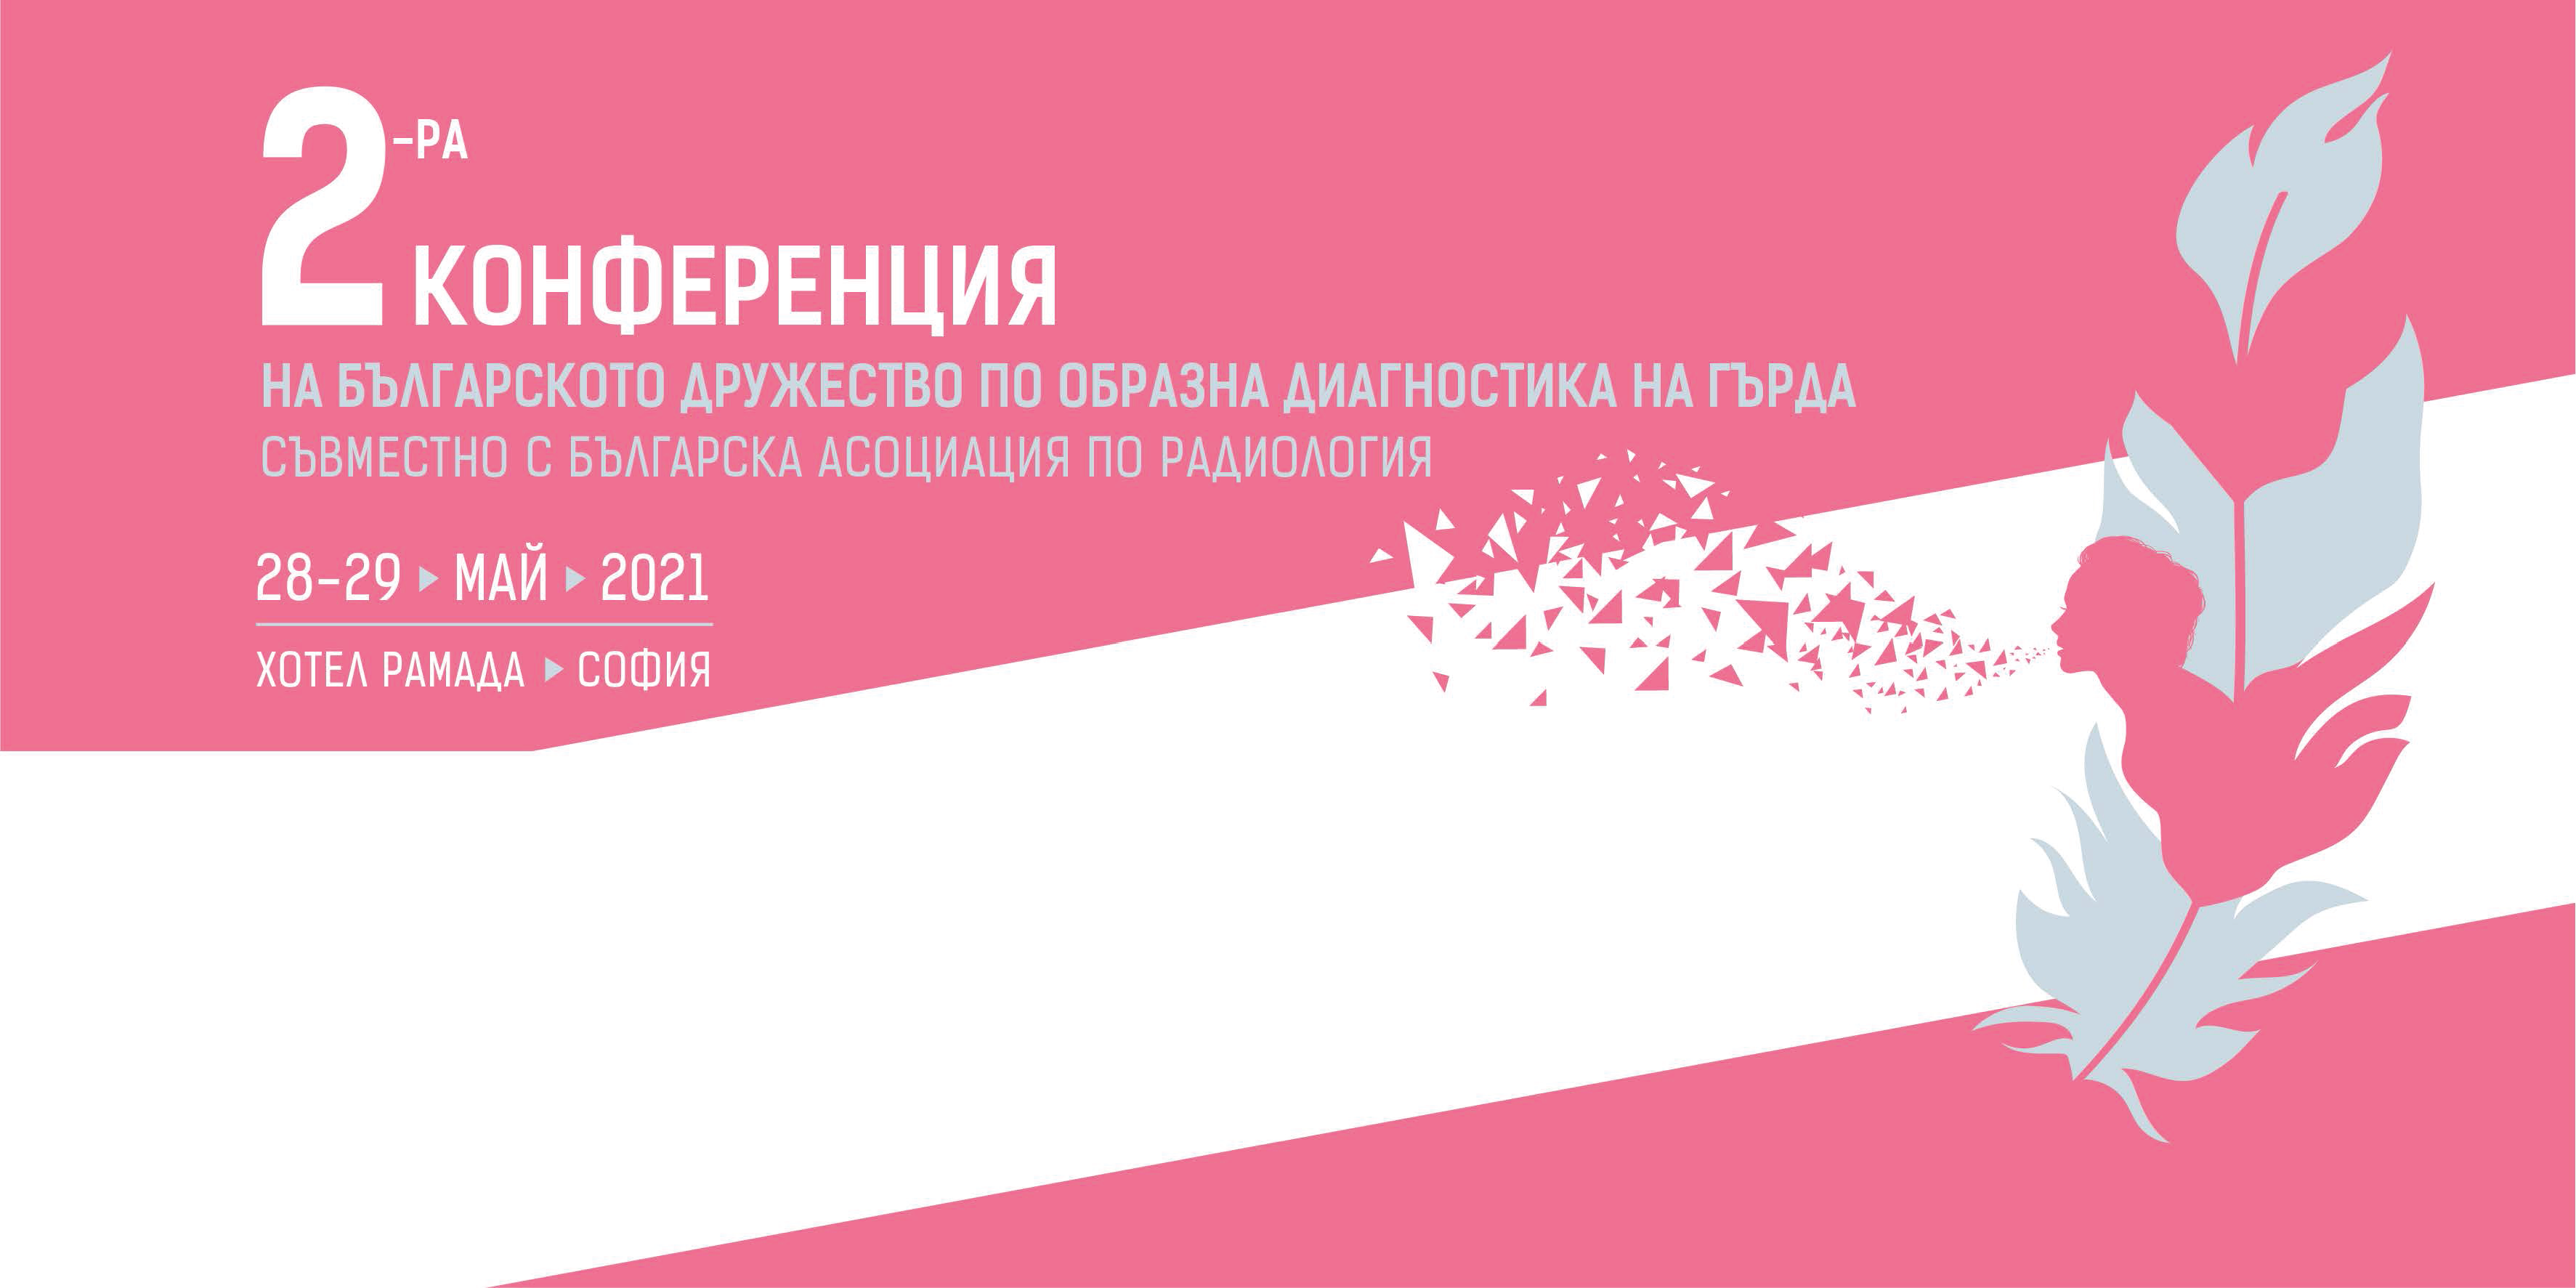 Second Conference of the Bulgarian Society of Breast Imaging